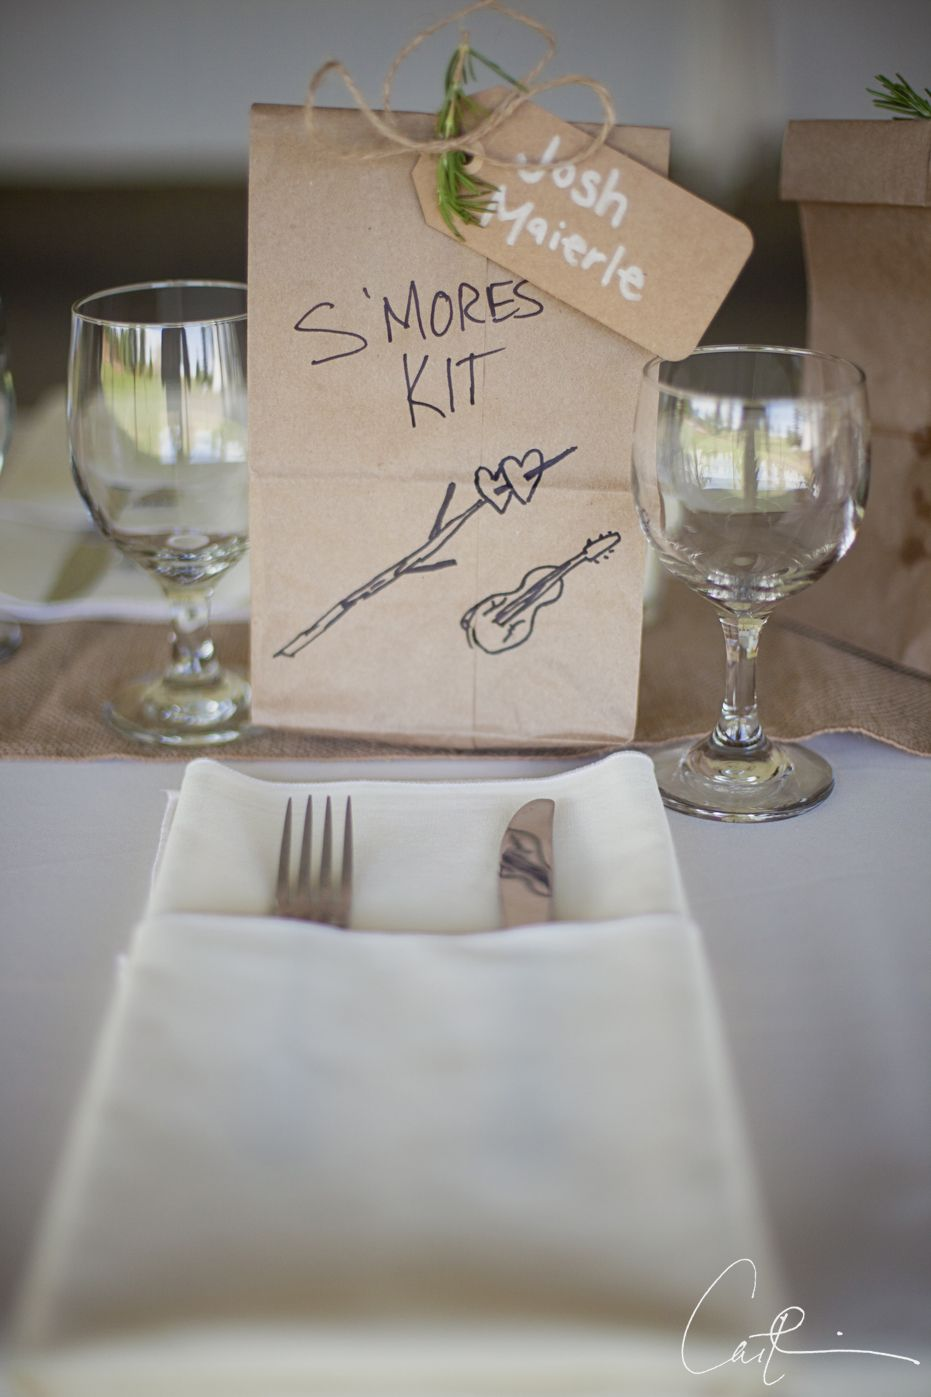 Perfect For An Outdoors Wedding Reception Place Setting At Mountain With Make Your Own S Mores Kit Boulder Colorado